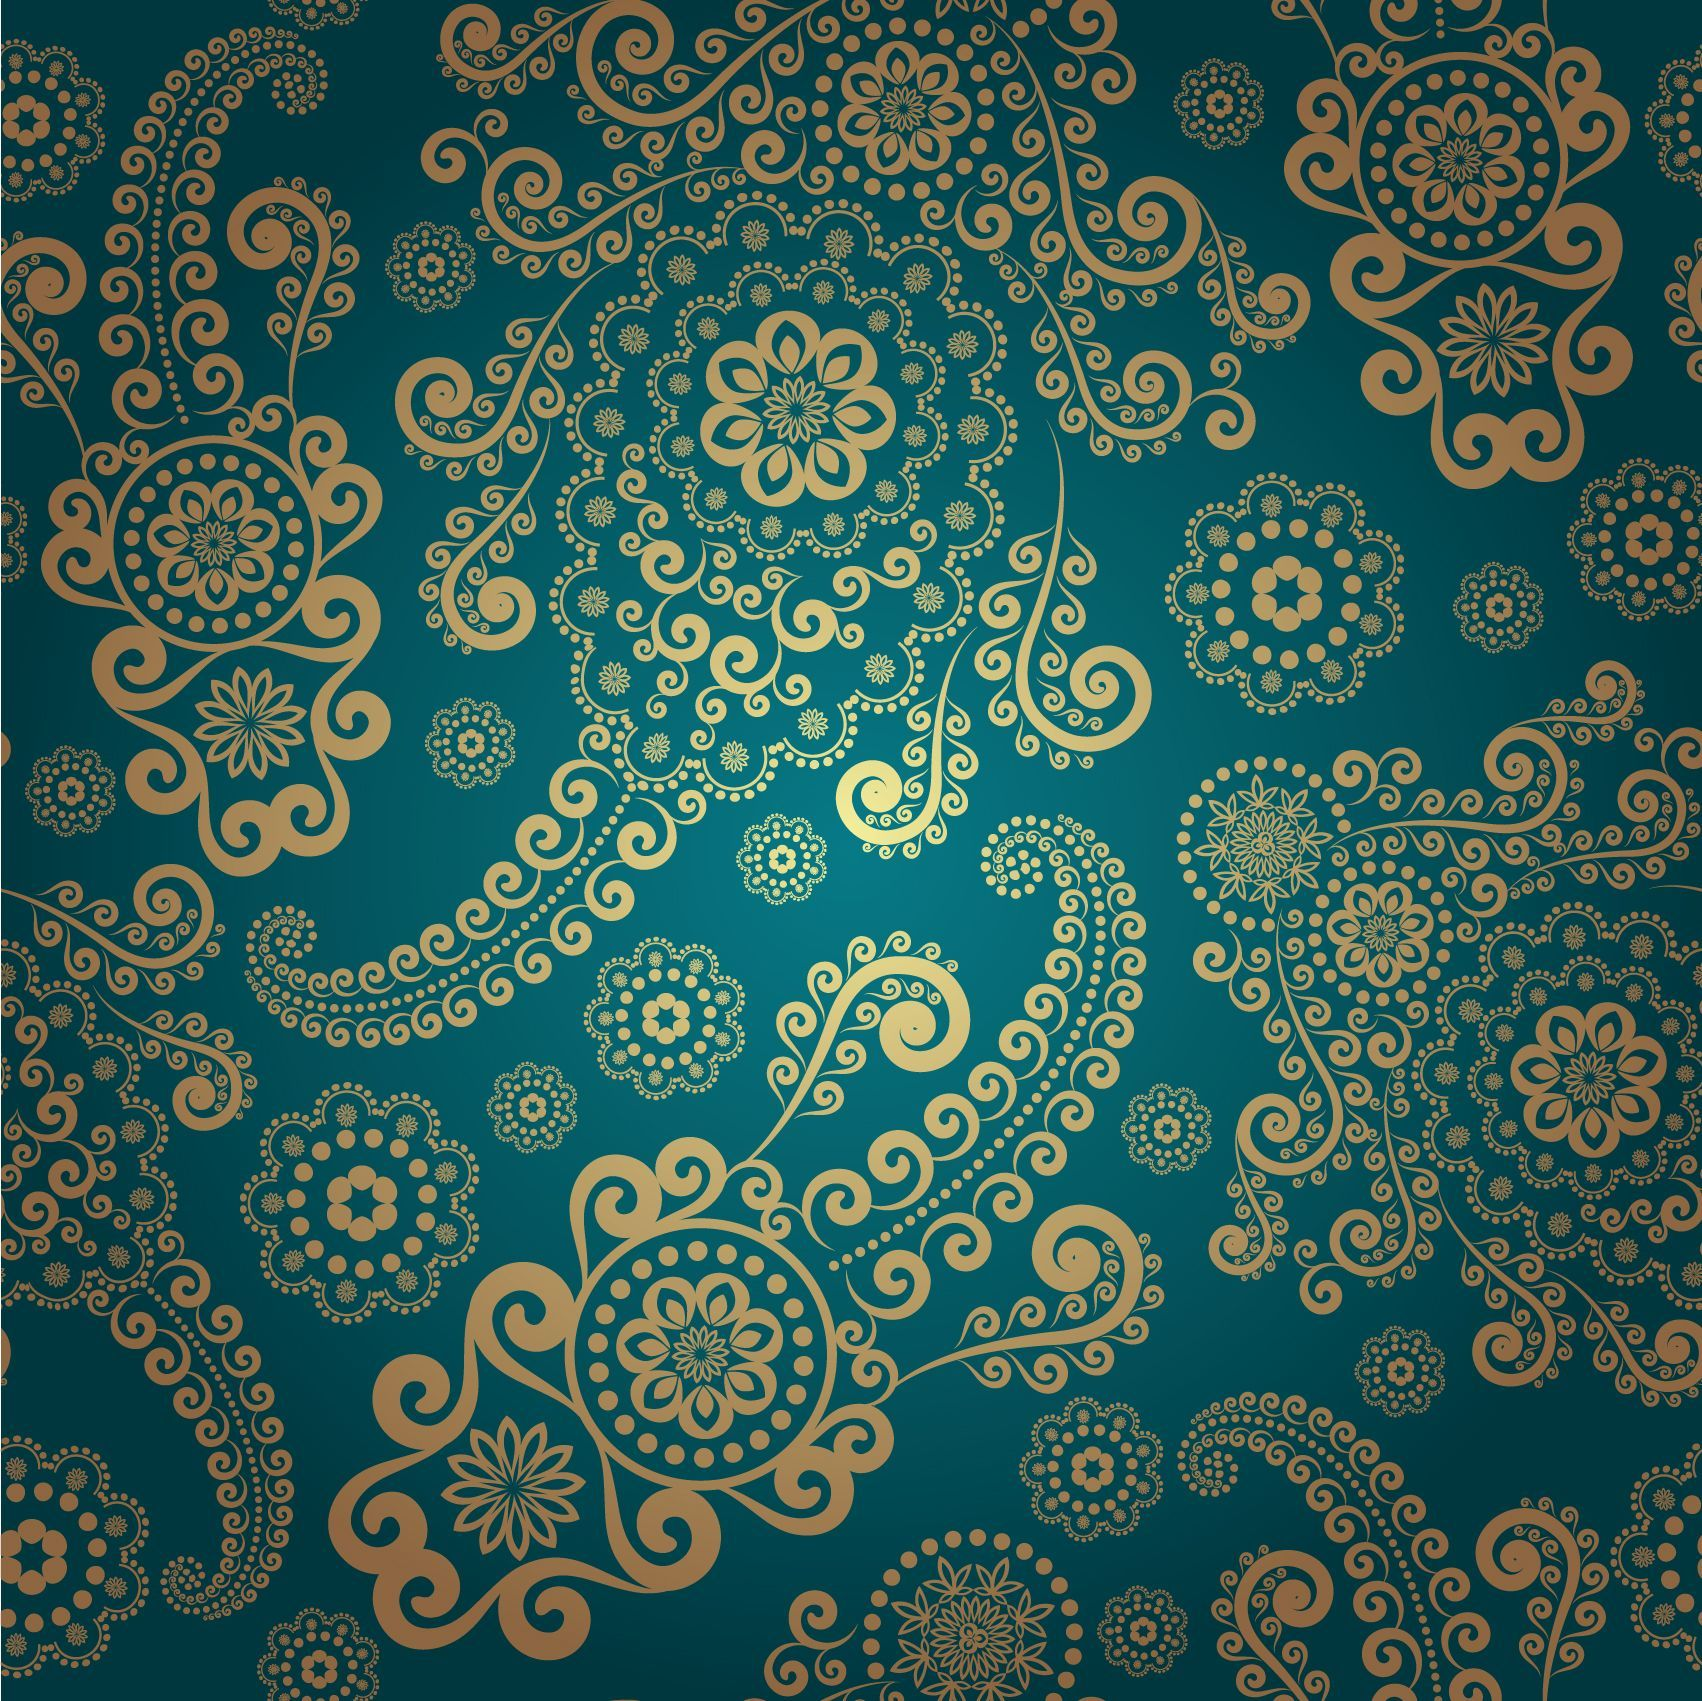 HD Wallpapers Patterns Group (84+)